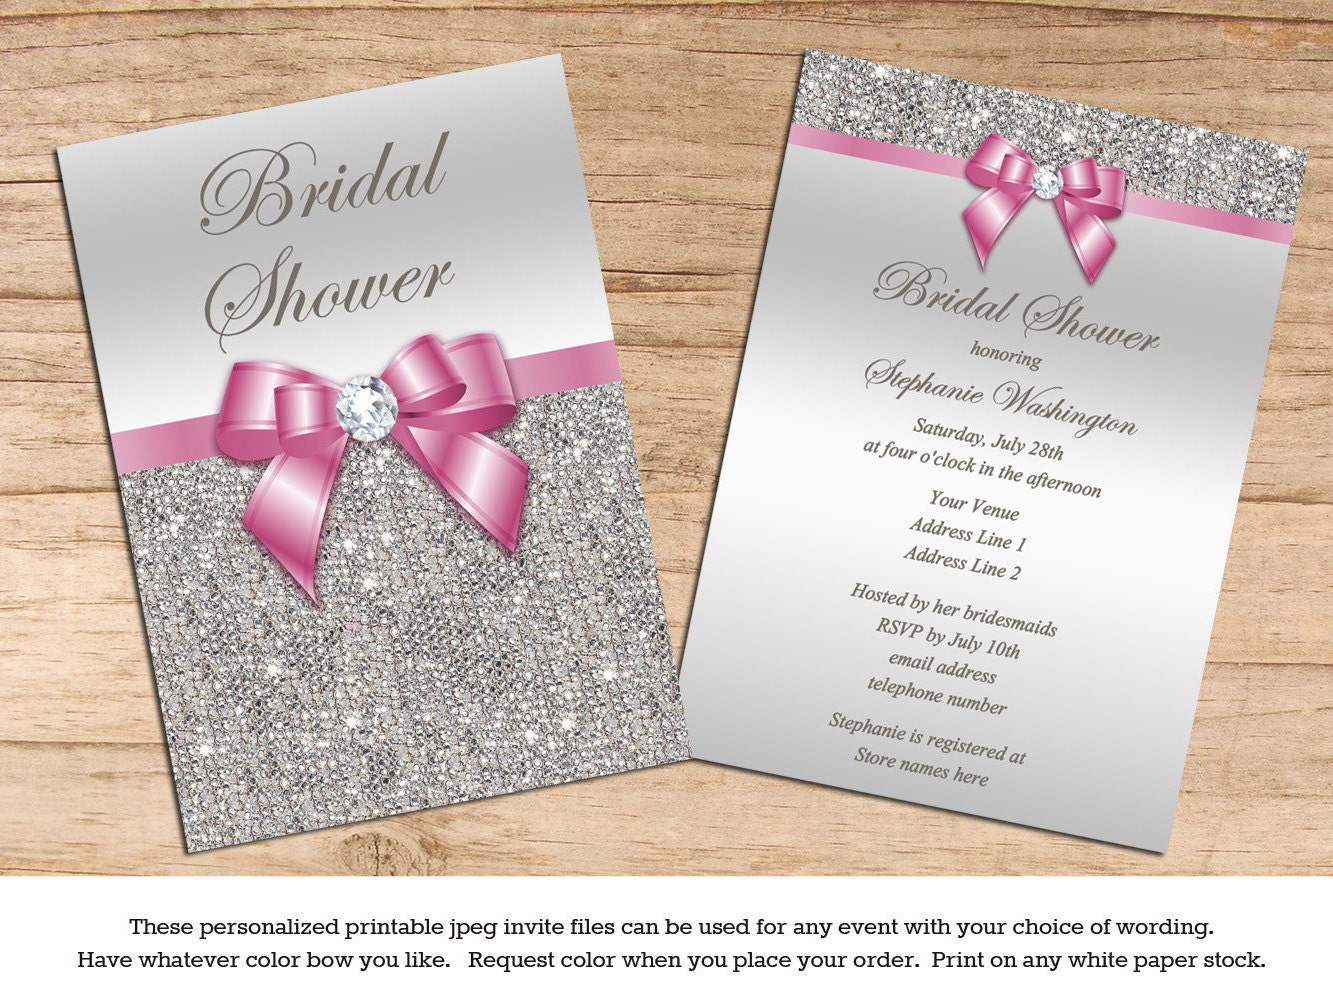 Bling Wedding Invitations: Bridal Shower Wedding Invitations Silver Sequins Bling Your